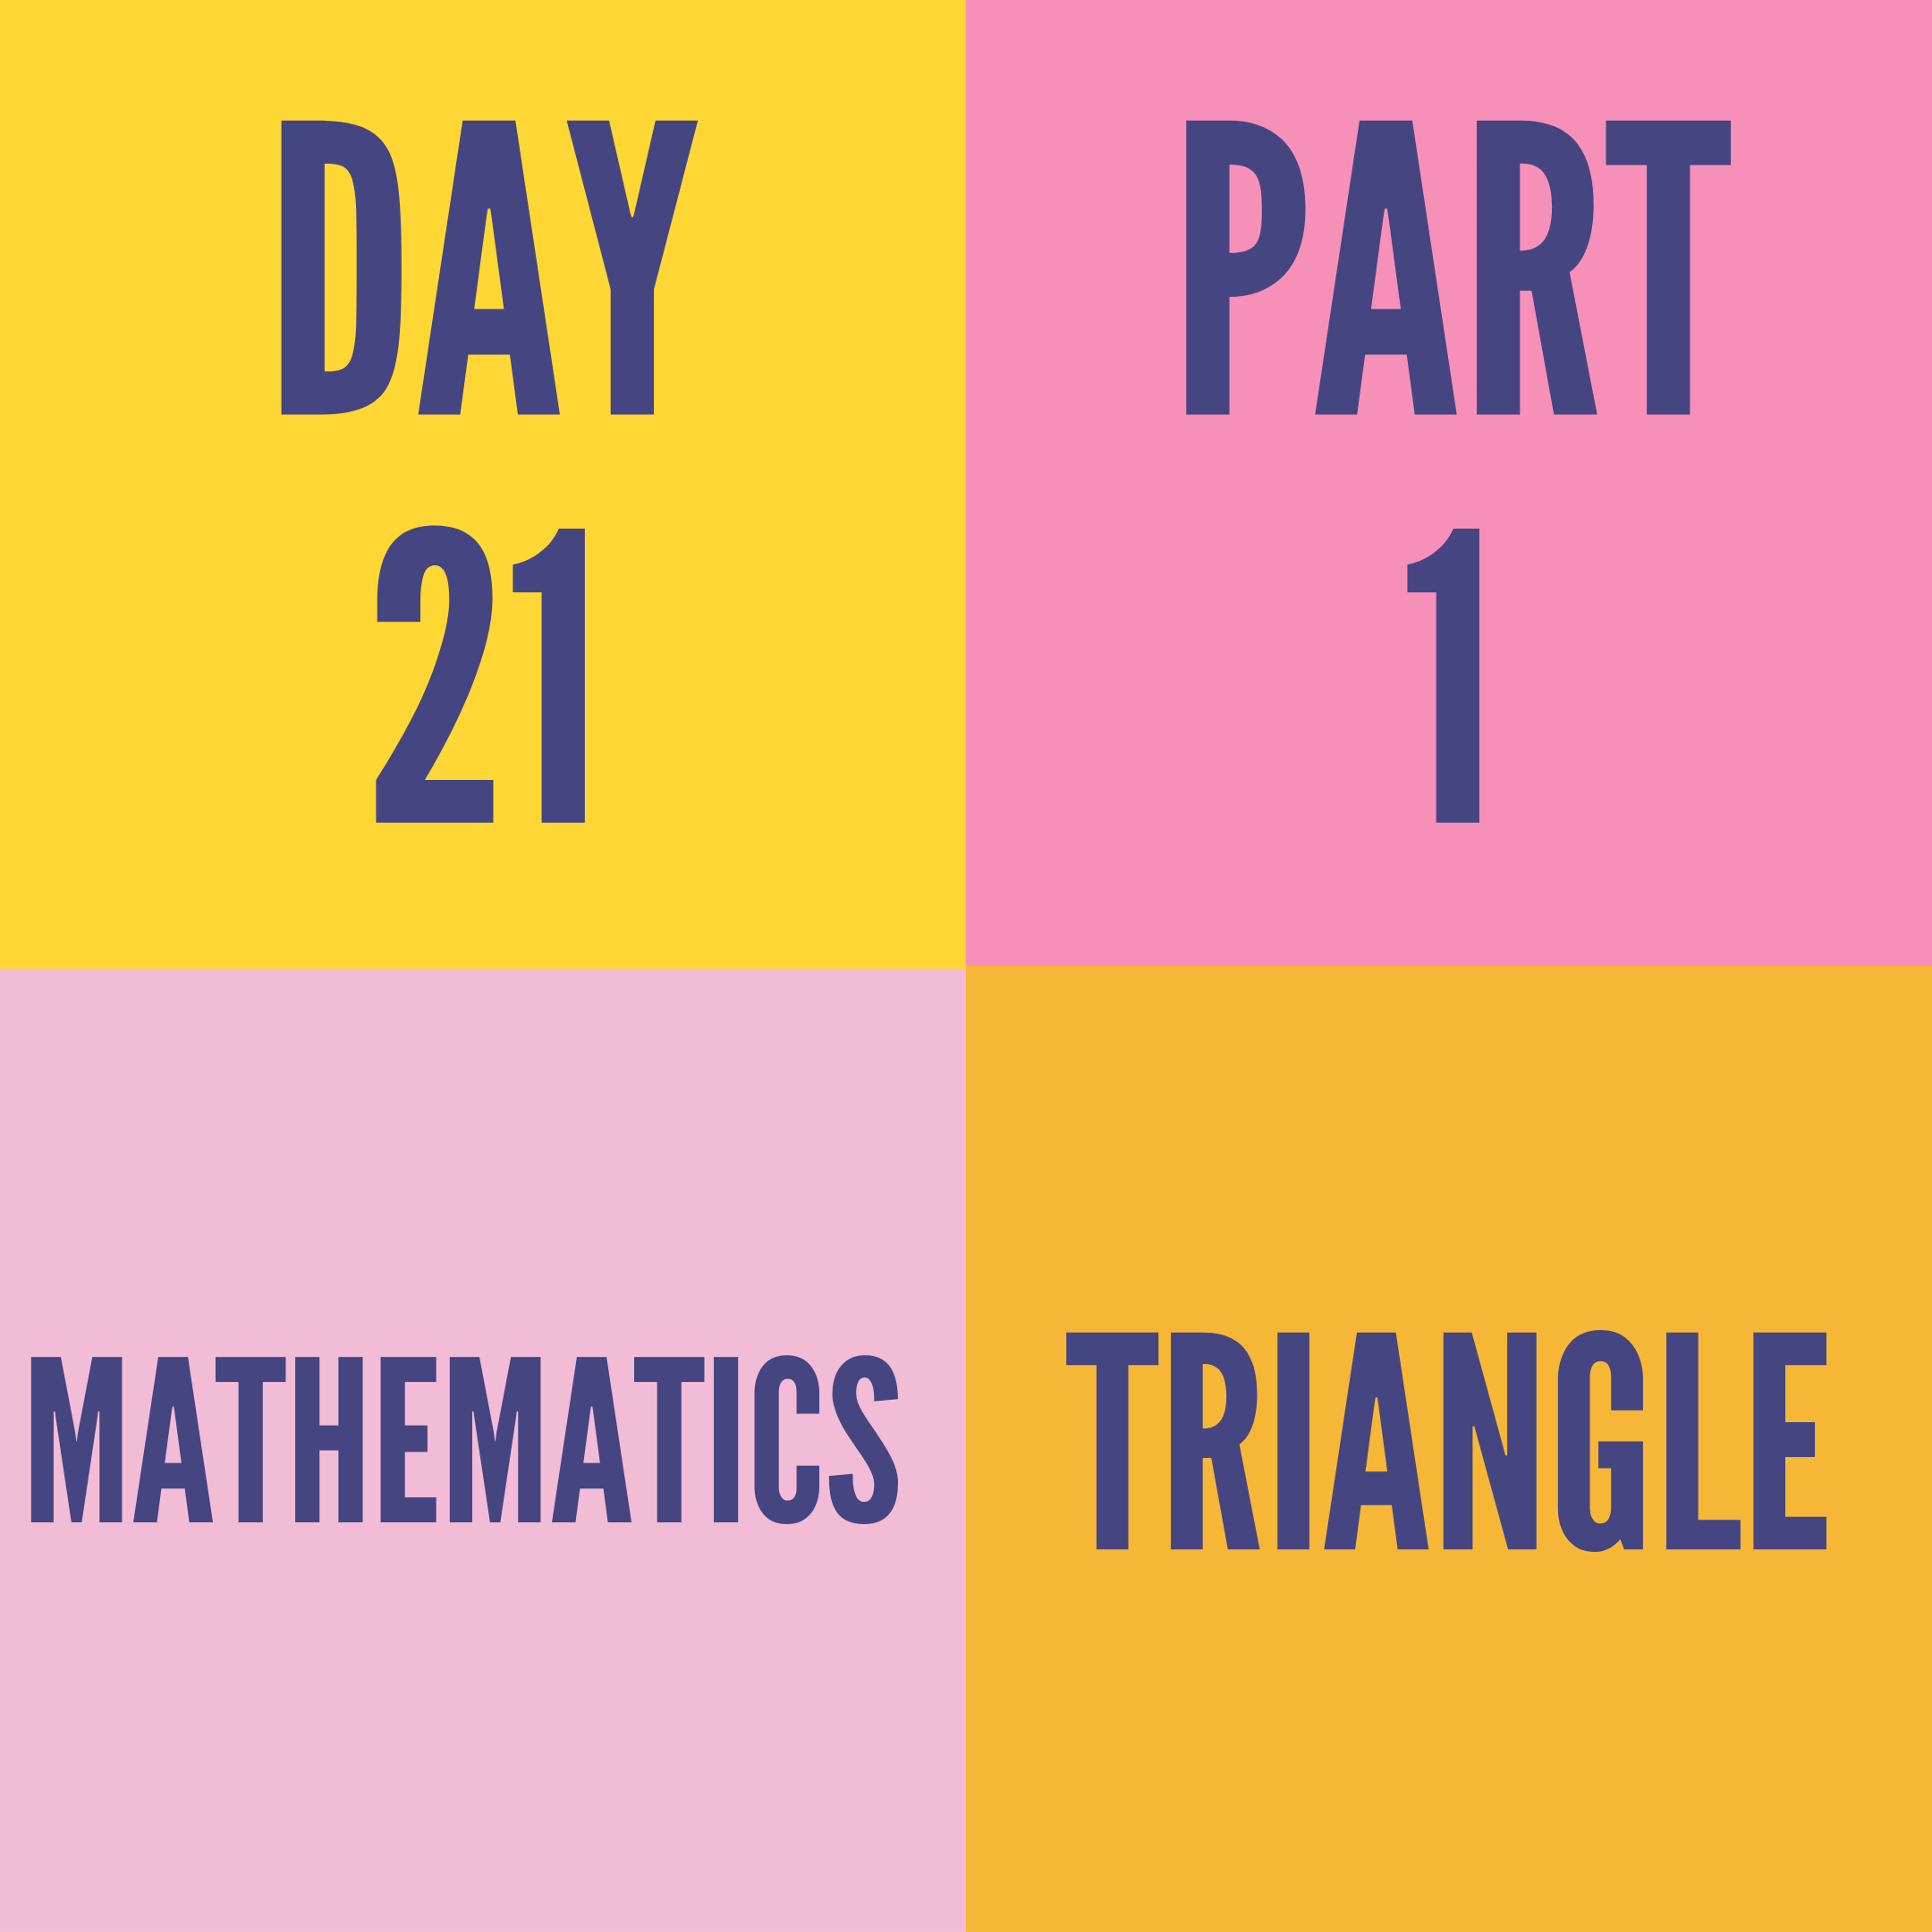 DAY-21 PART-1 TRIANGLE